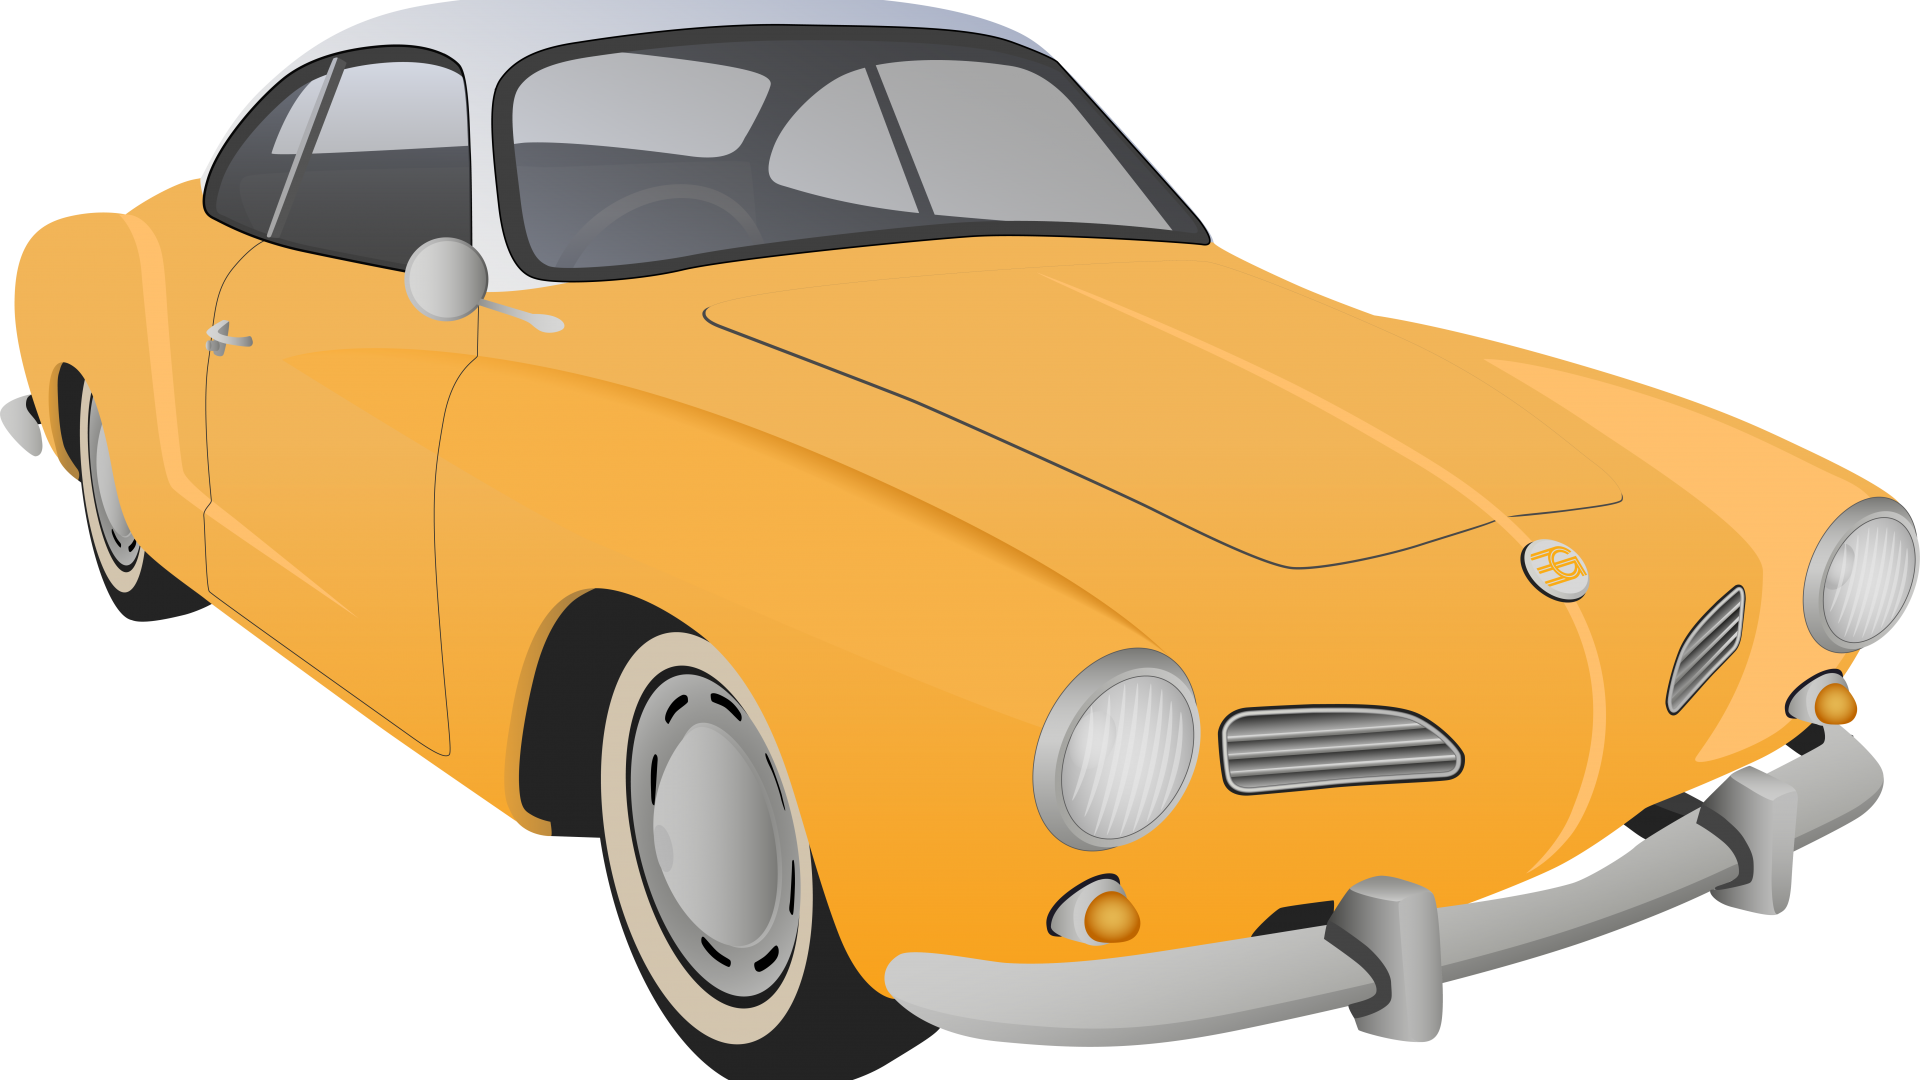 Project Karmann Ghia